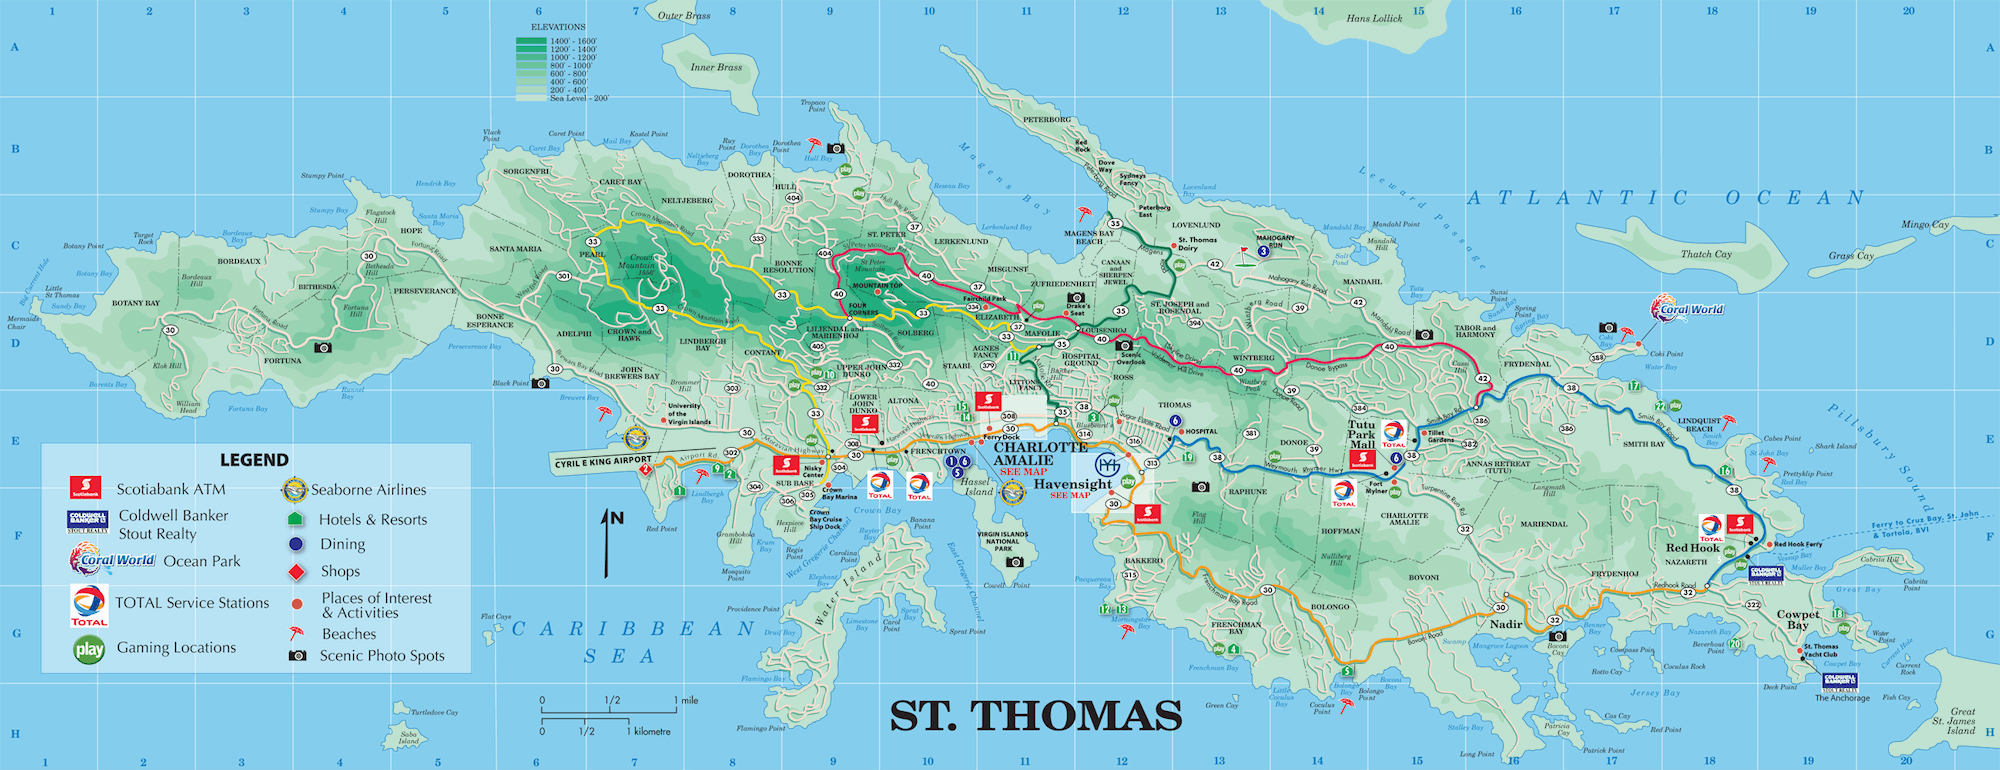 st thomas island tourist map